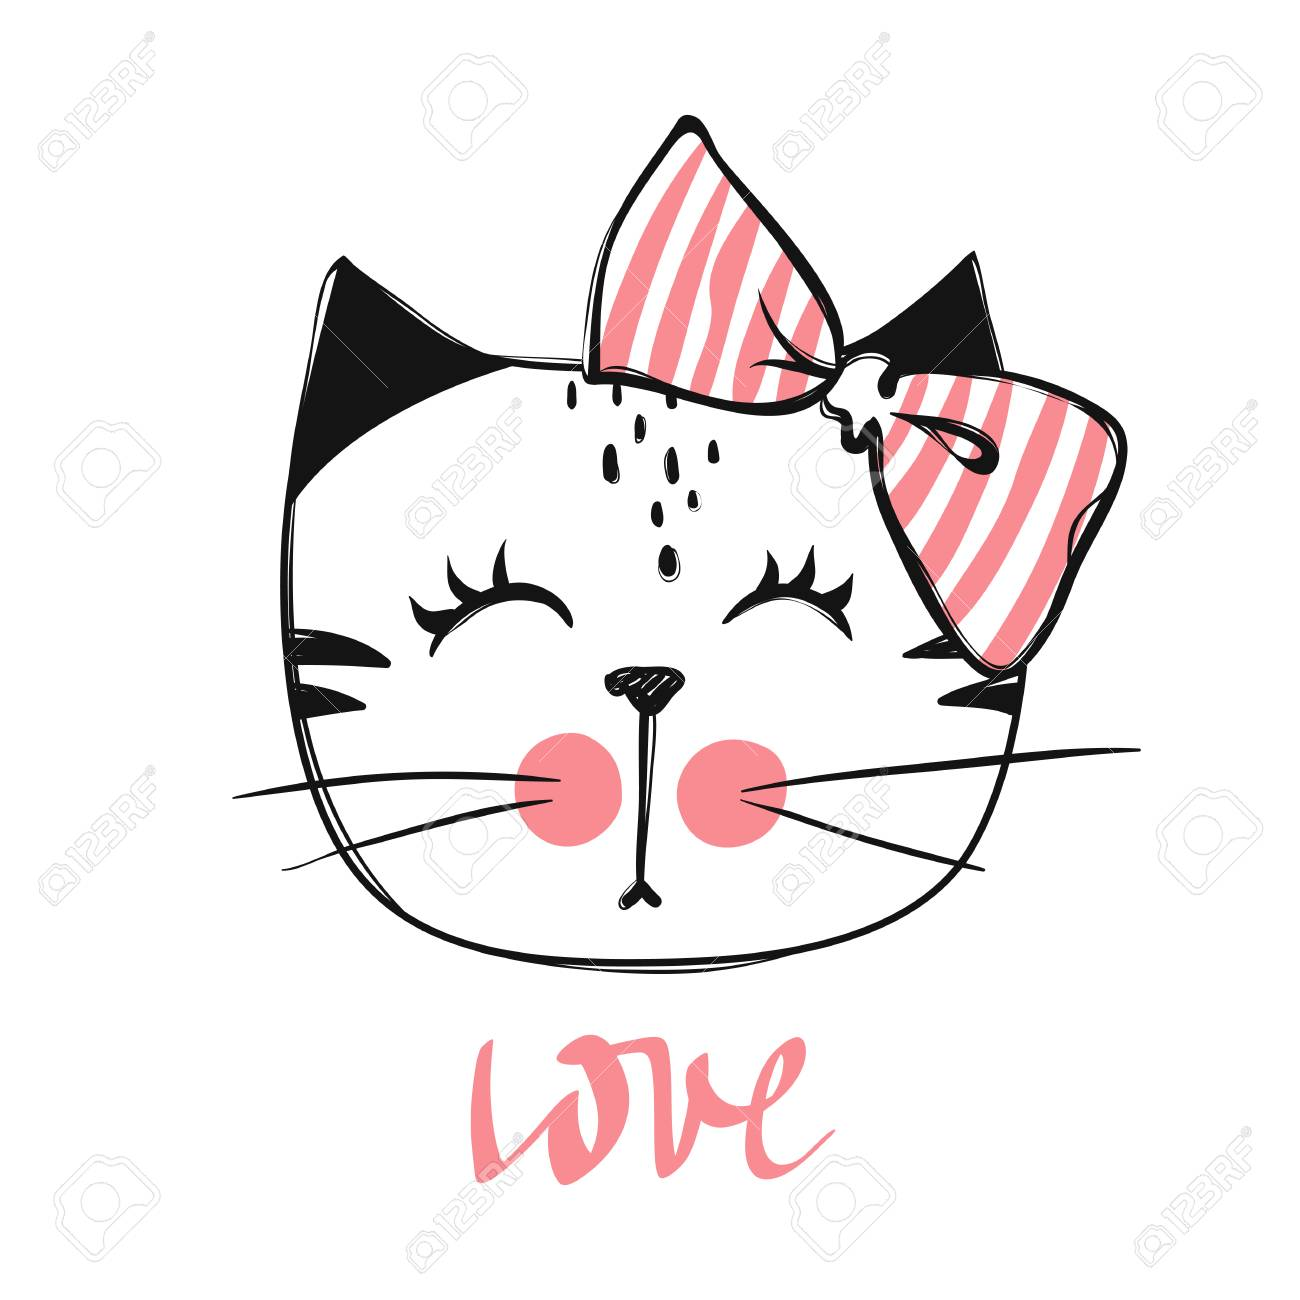 Cute Cat Vector Design Girly Kittens Fashion Cat S Face Animal Royalty Free Cliparts Vectors And Stock Illustration Image 110300088